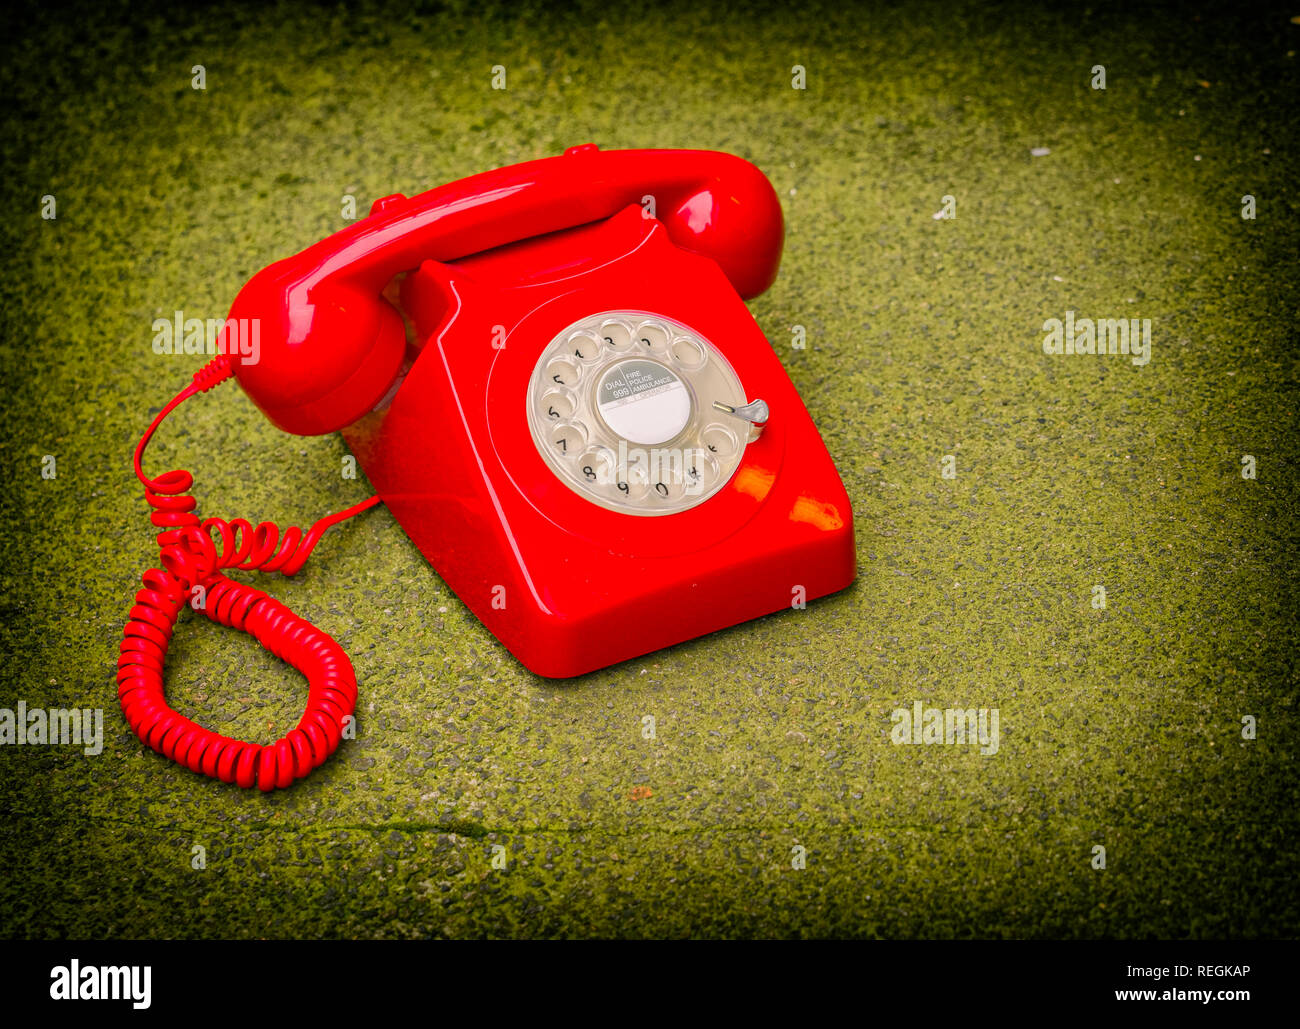 Old Fashioned Rotary Dial Telephone - Stock Image